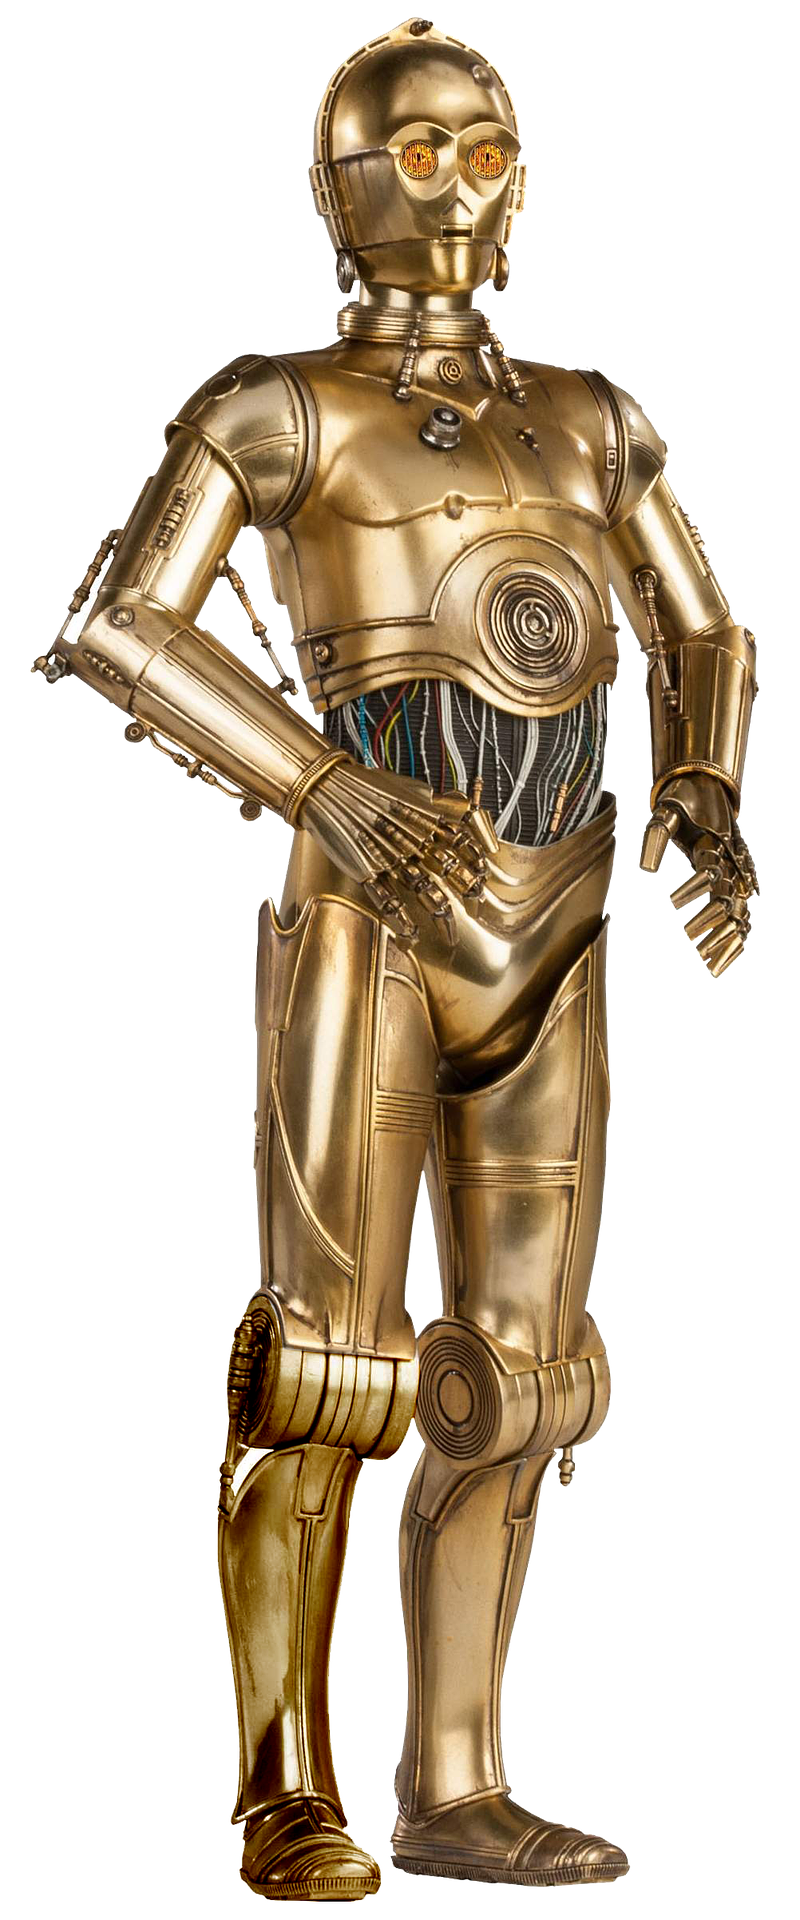 c-3po-2697682_1920.png